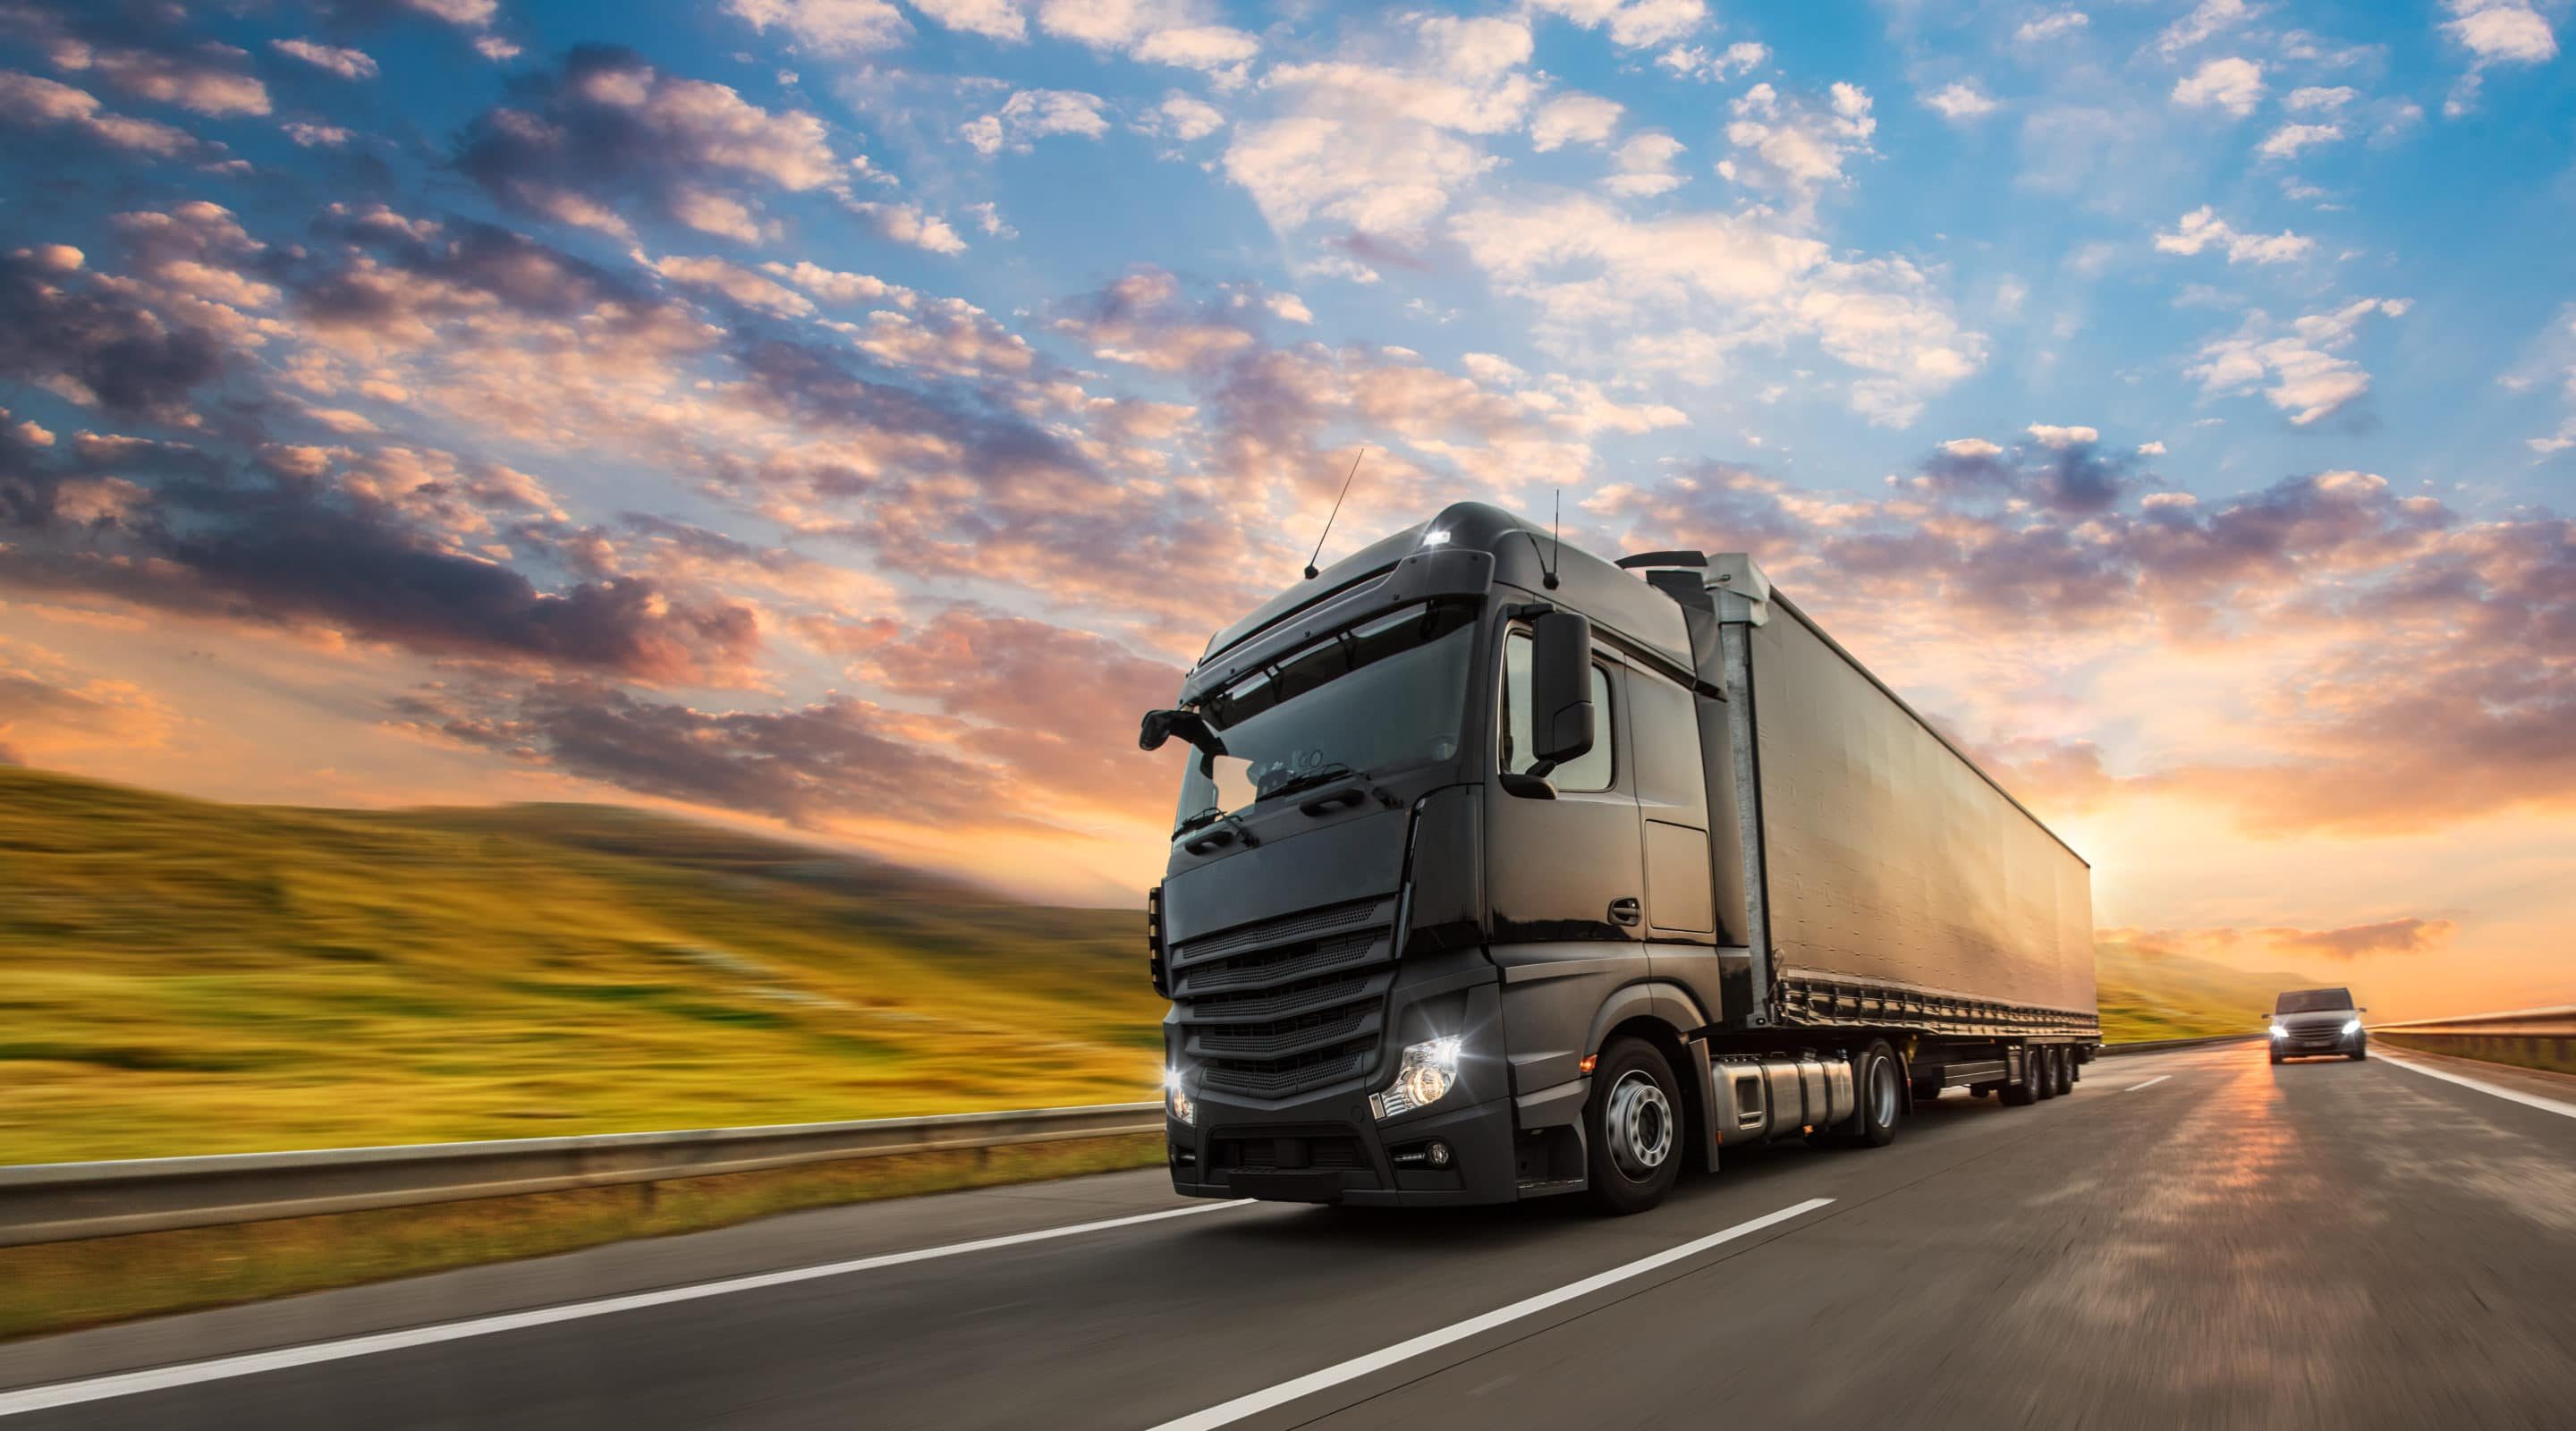 tractor trailer driving on highway image